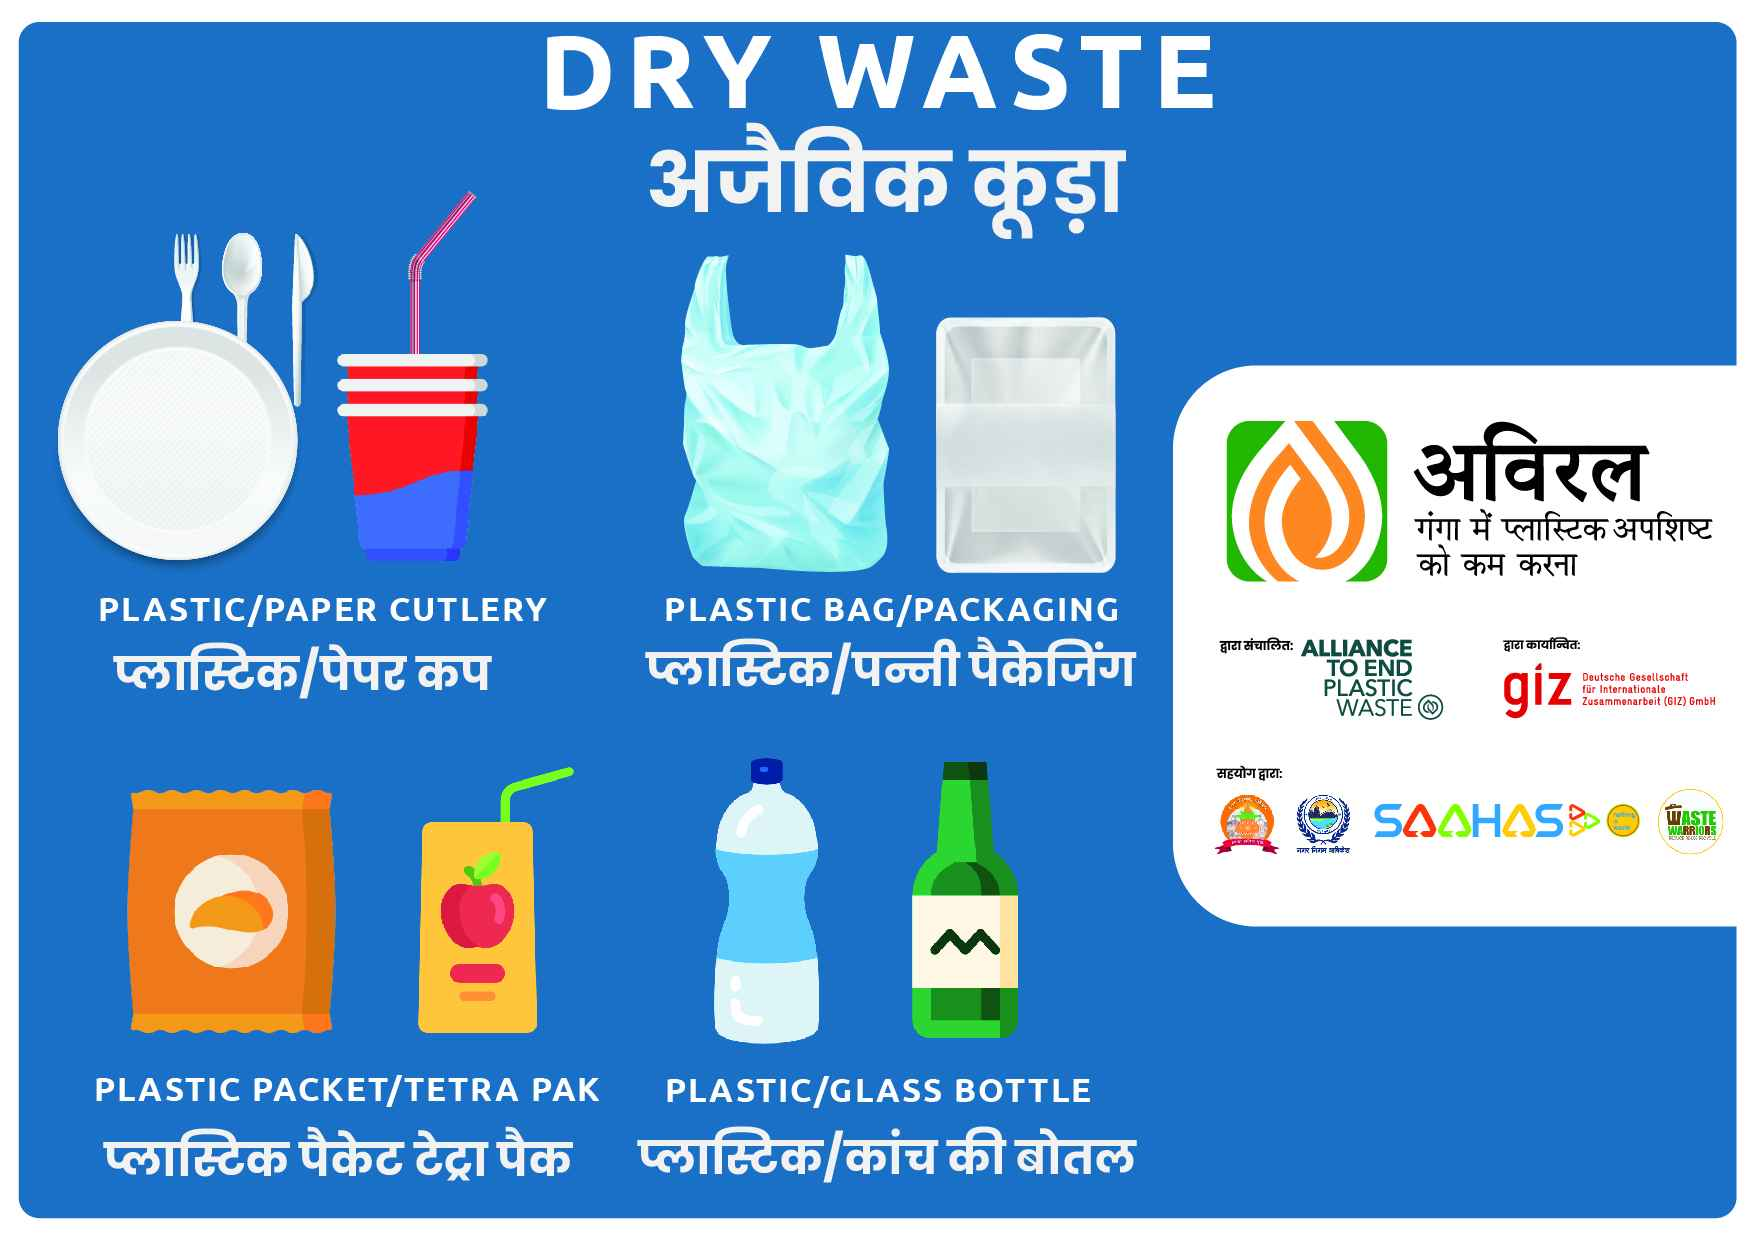 Bin Posters for Events- Dry Waste